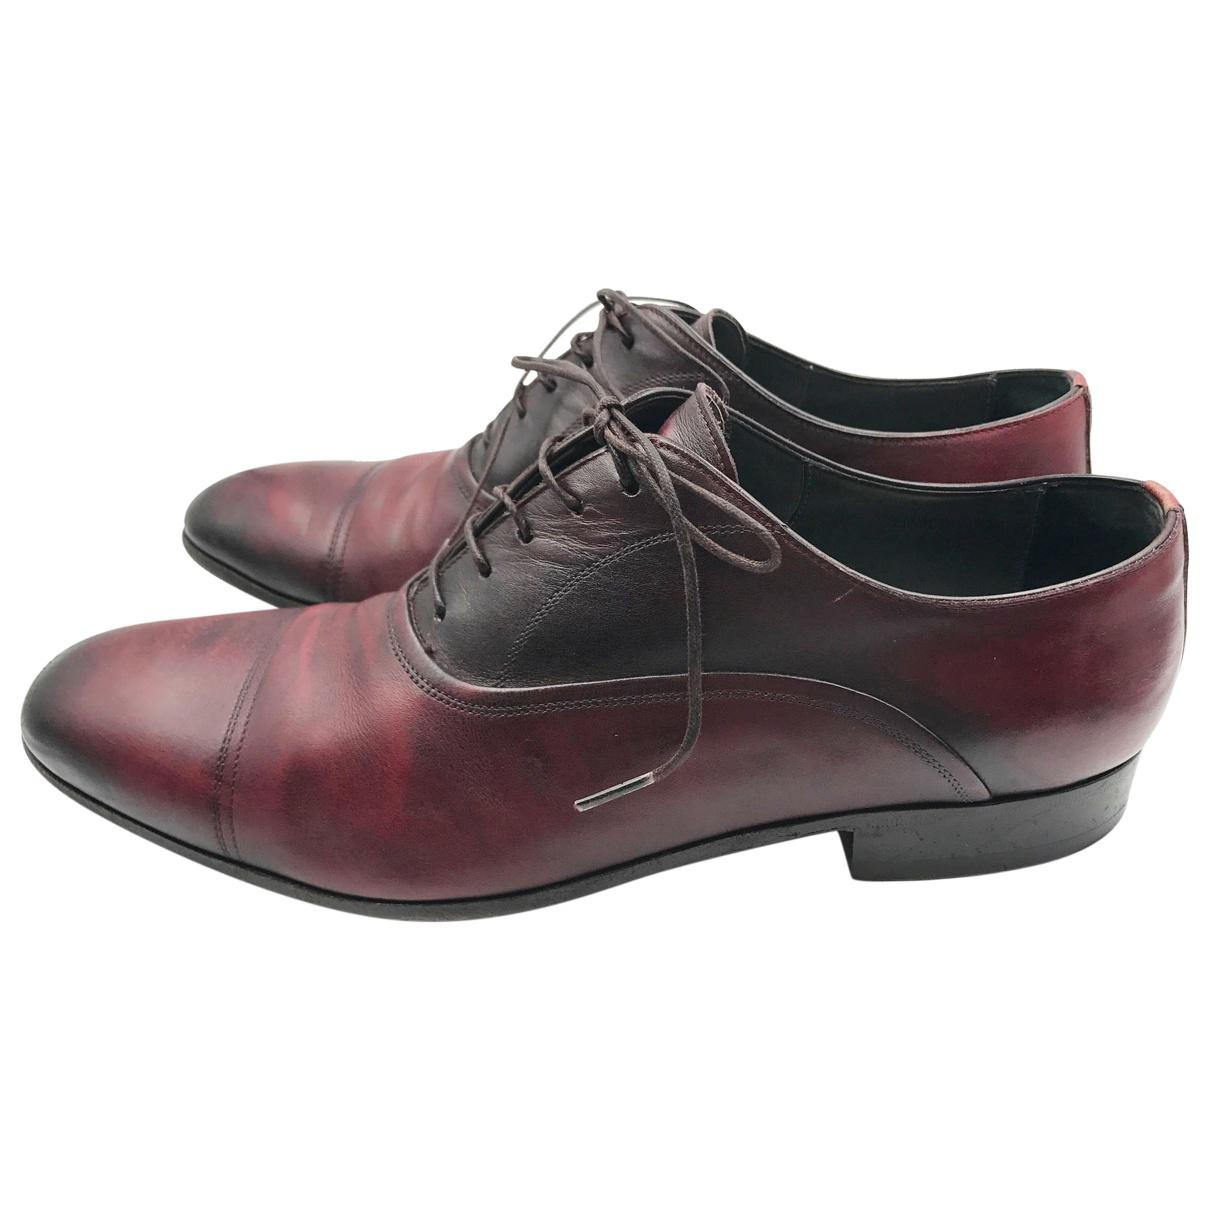 Pre-owned - Leather lace ups Lanvin ozym878sd